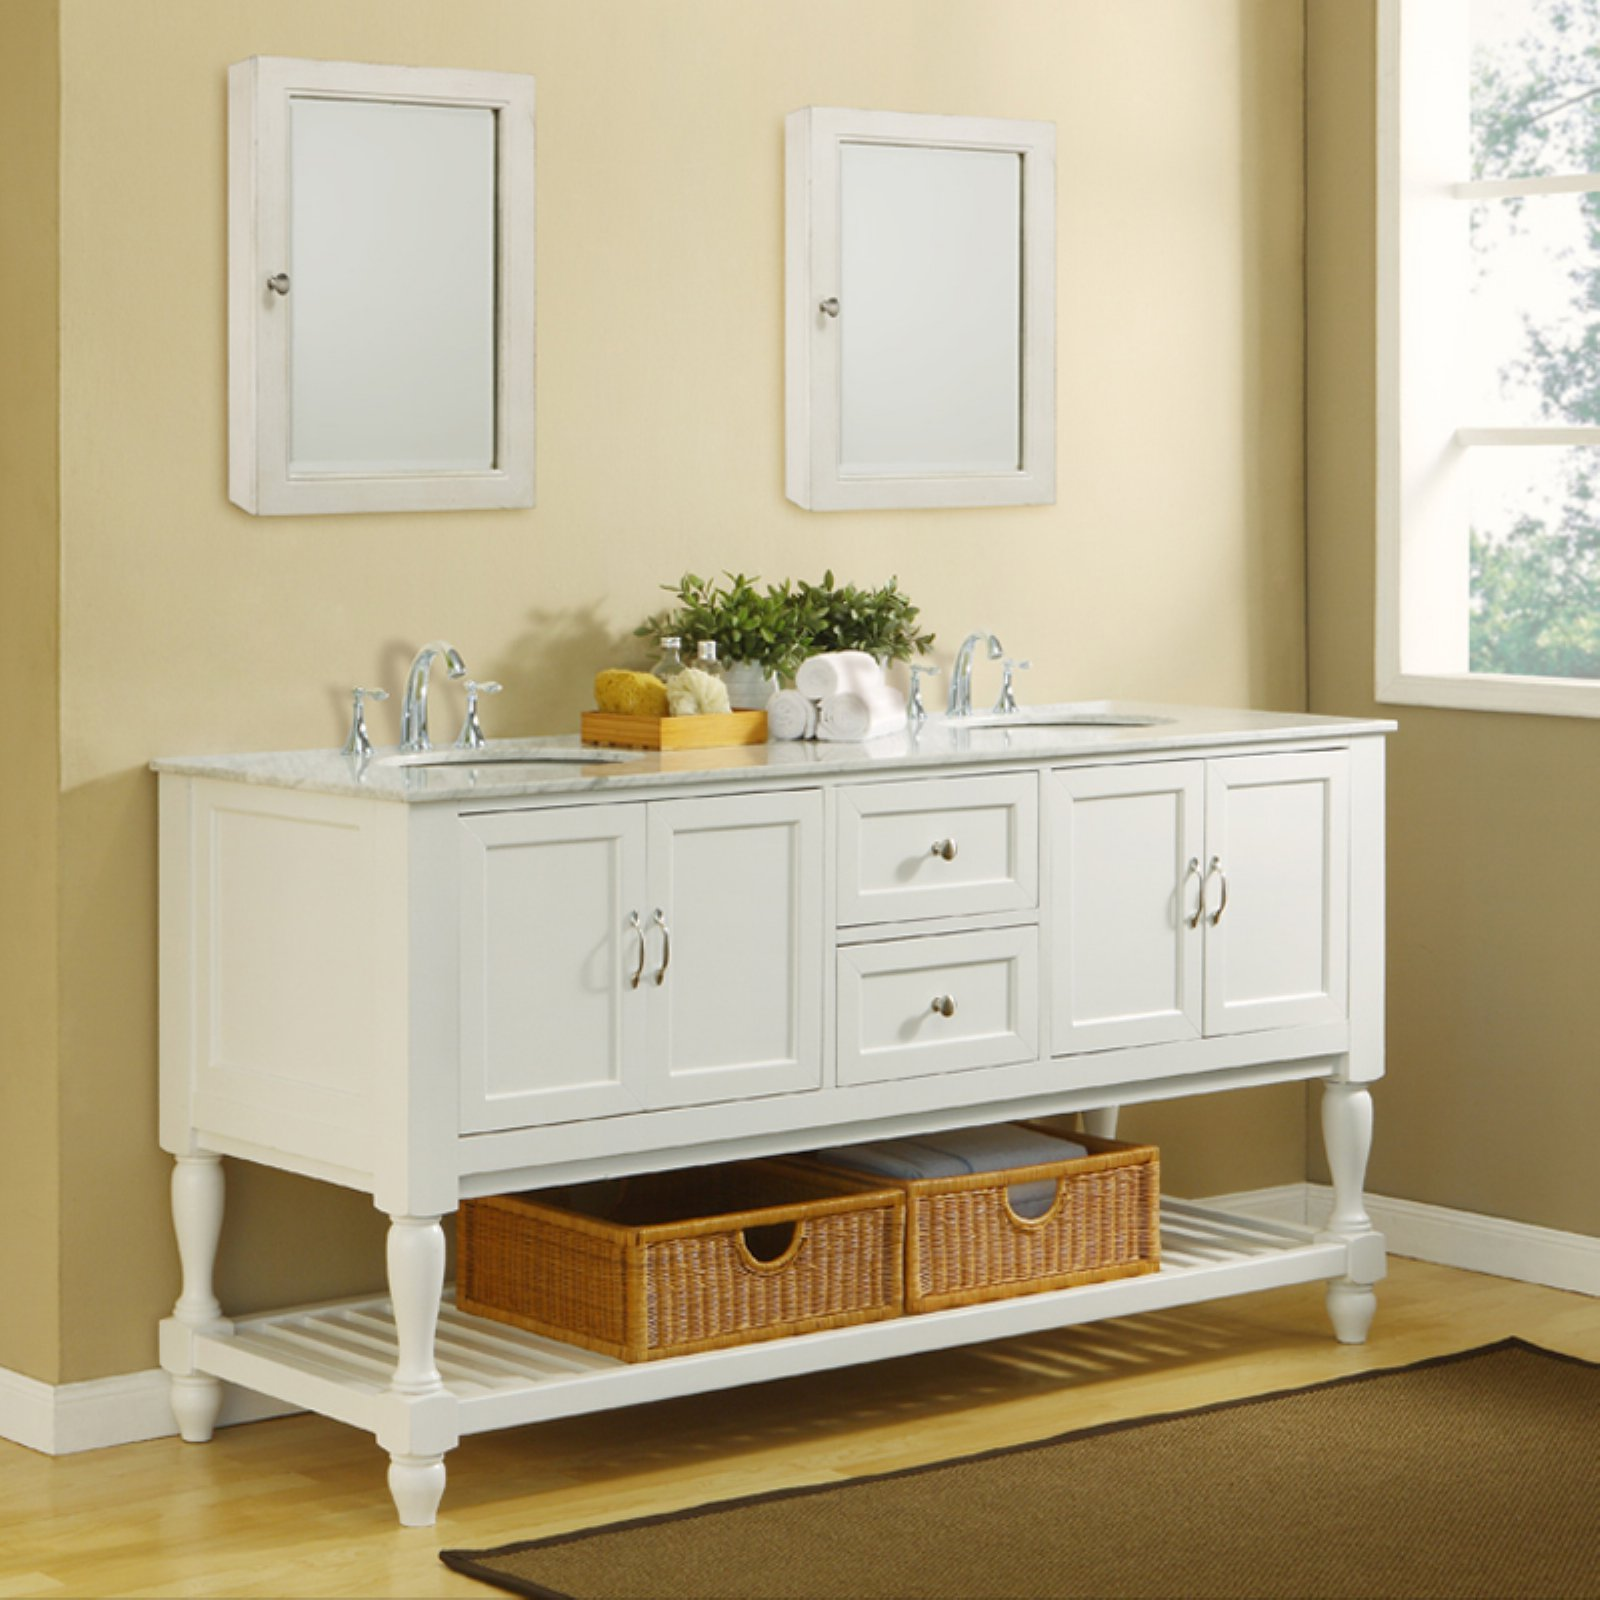 Direct Vanity Sink 6070D10 W Mission Turnleg 70 In. Double Bathroom Vanity